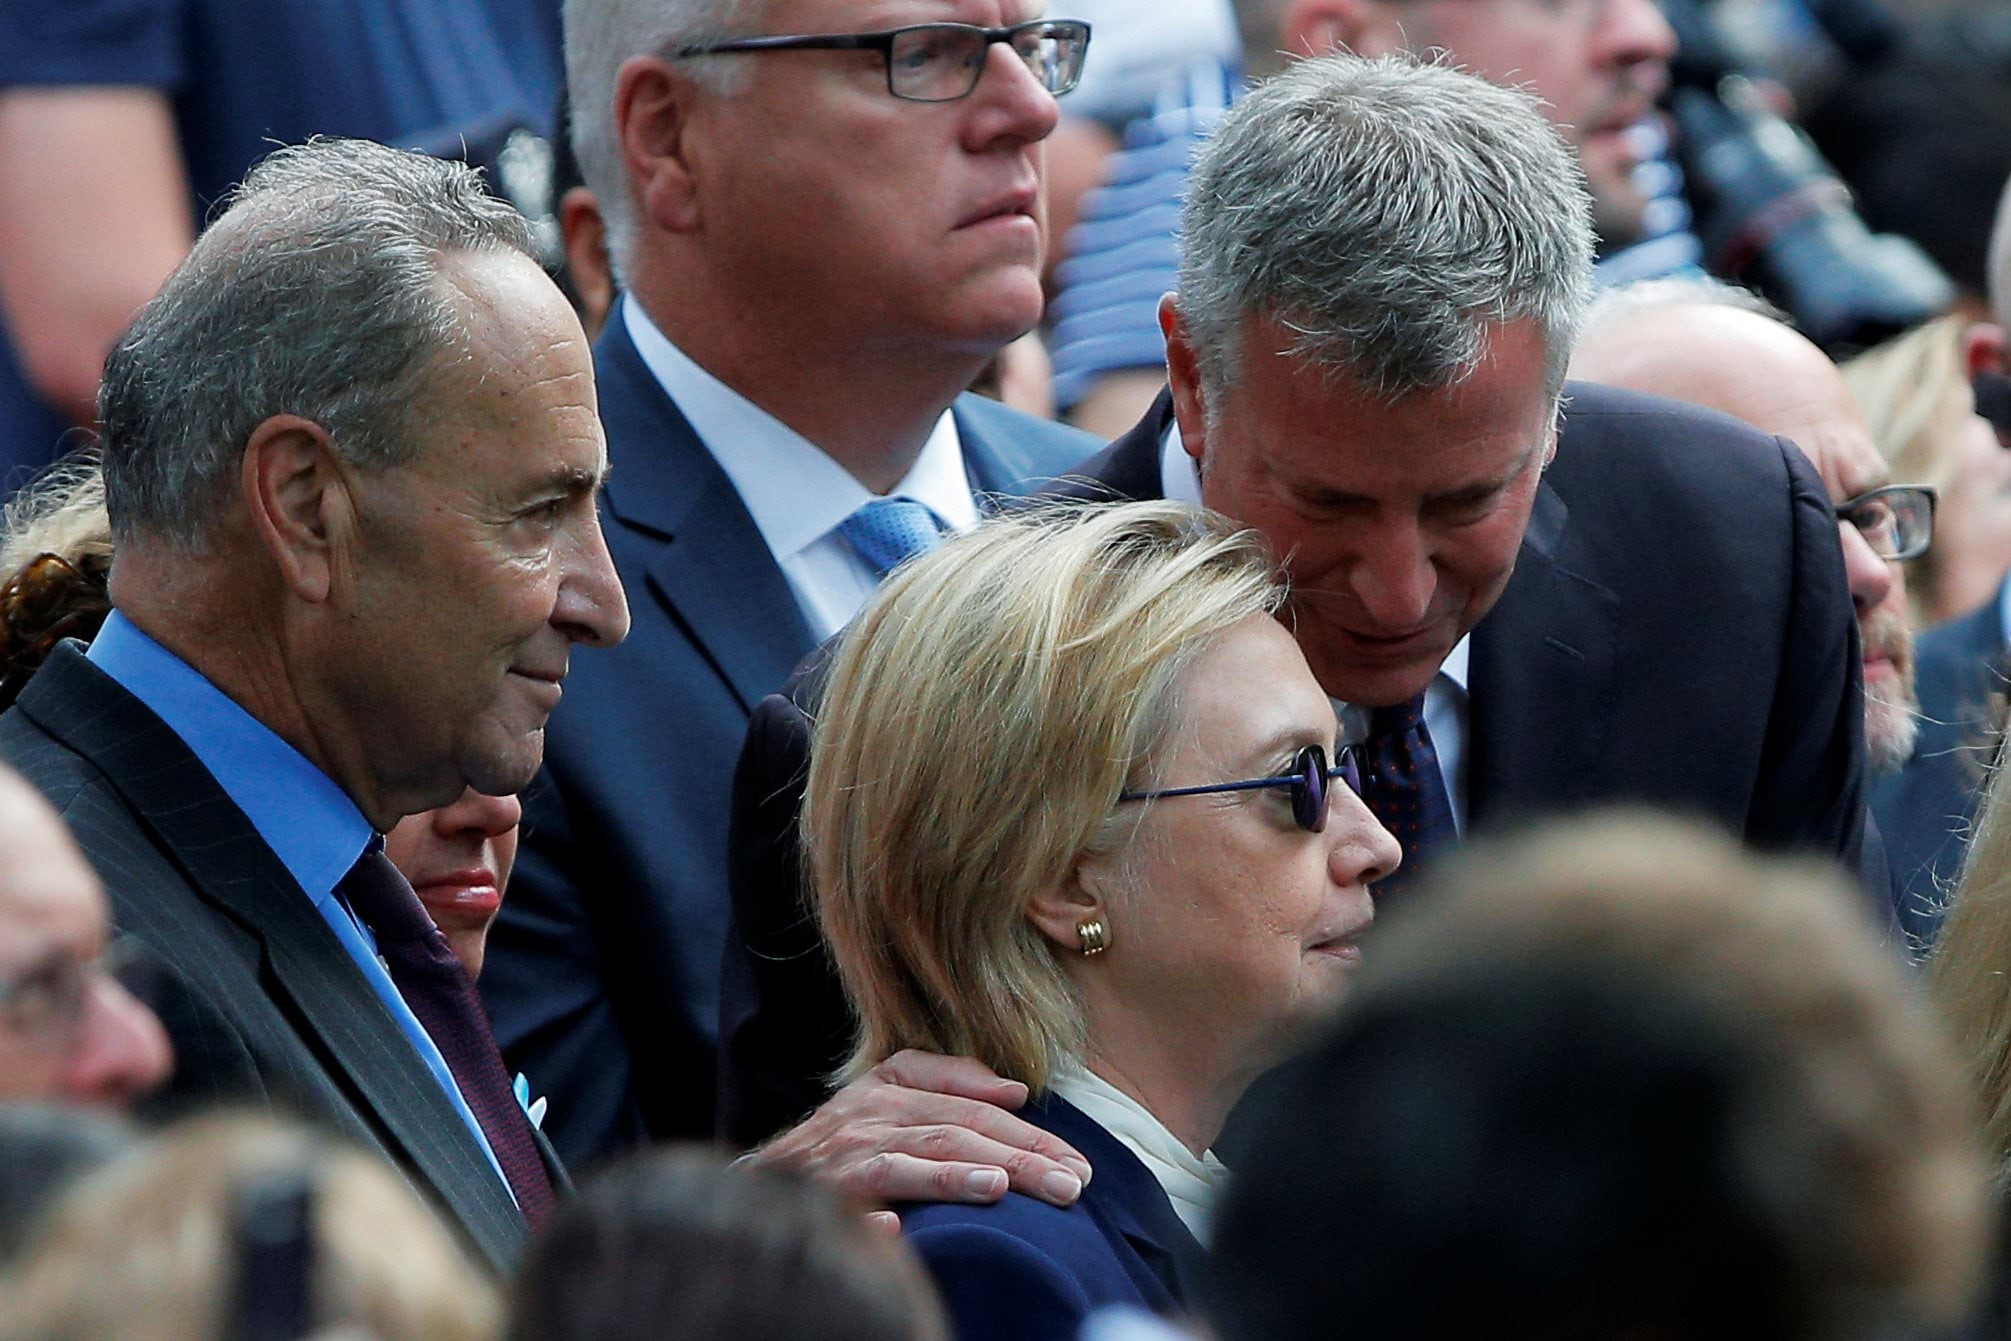 U.S. Democratic presidential candidate Hillary Clinton, New York Mayor Bill de Blasio (R) and U.S. Senator Chuck Schumer attend ceremonies to mark the 15th anniversary of the September 11 attacks at the National 9/11 Memorial in New York, New York, United States September 11, 2016. REUTERS/Brian Snyder